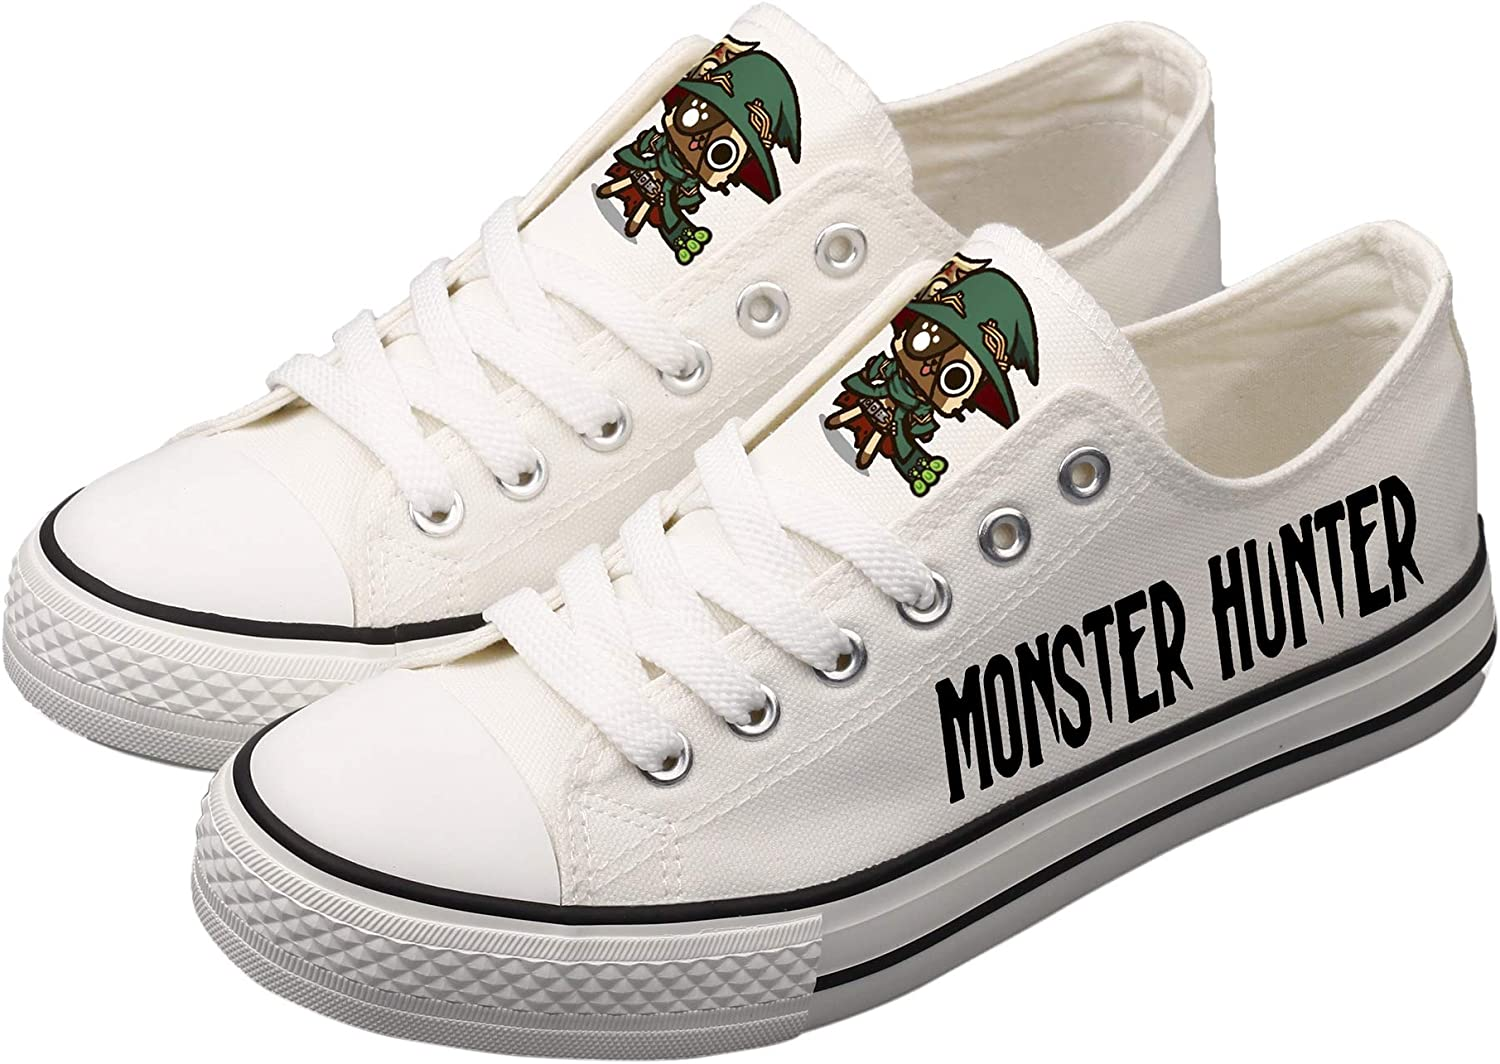 BEGOOTION Monster Hunter Hand-Painted Canvas shoes Unisex Designs Casual Canvas shoes Cosplay Low Cut Sneakers